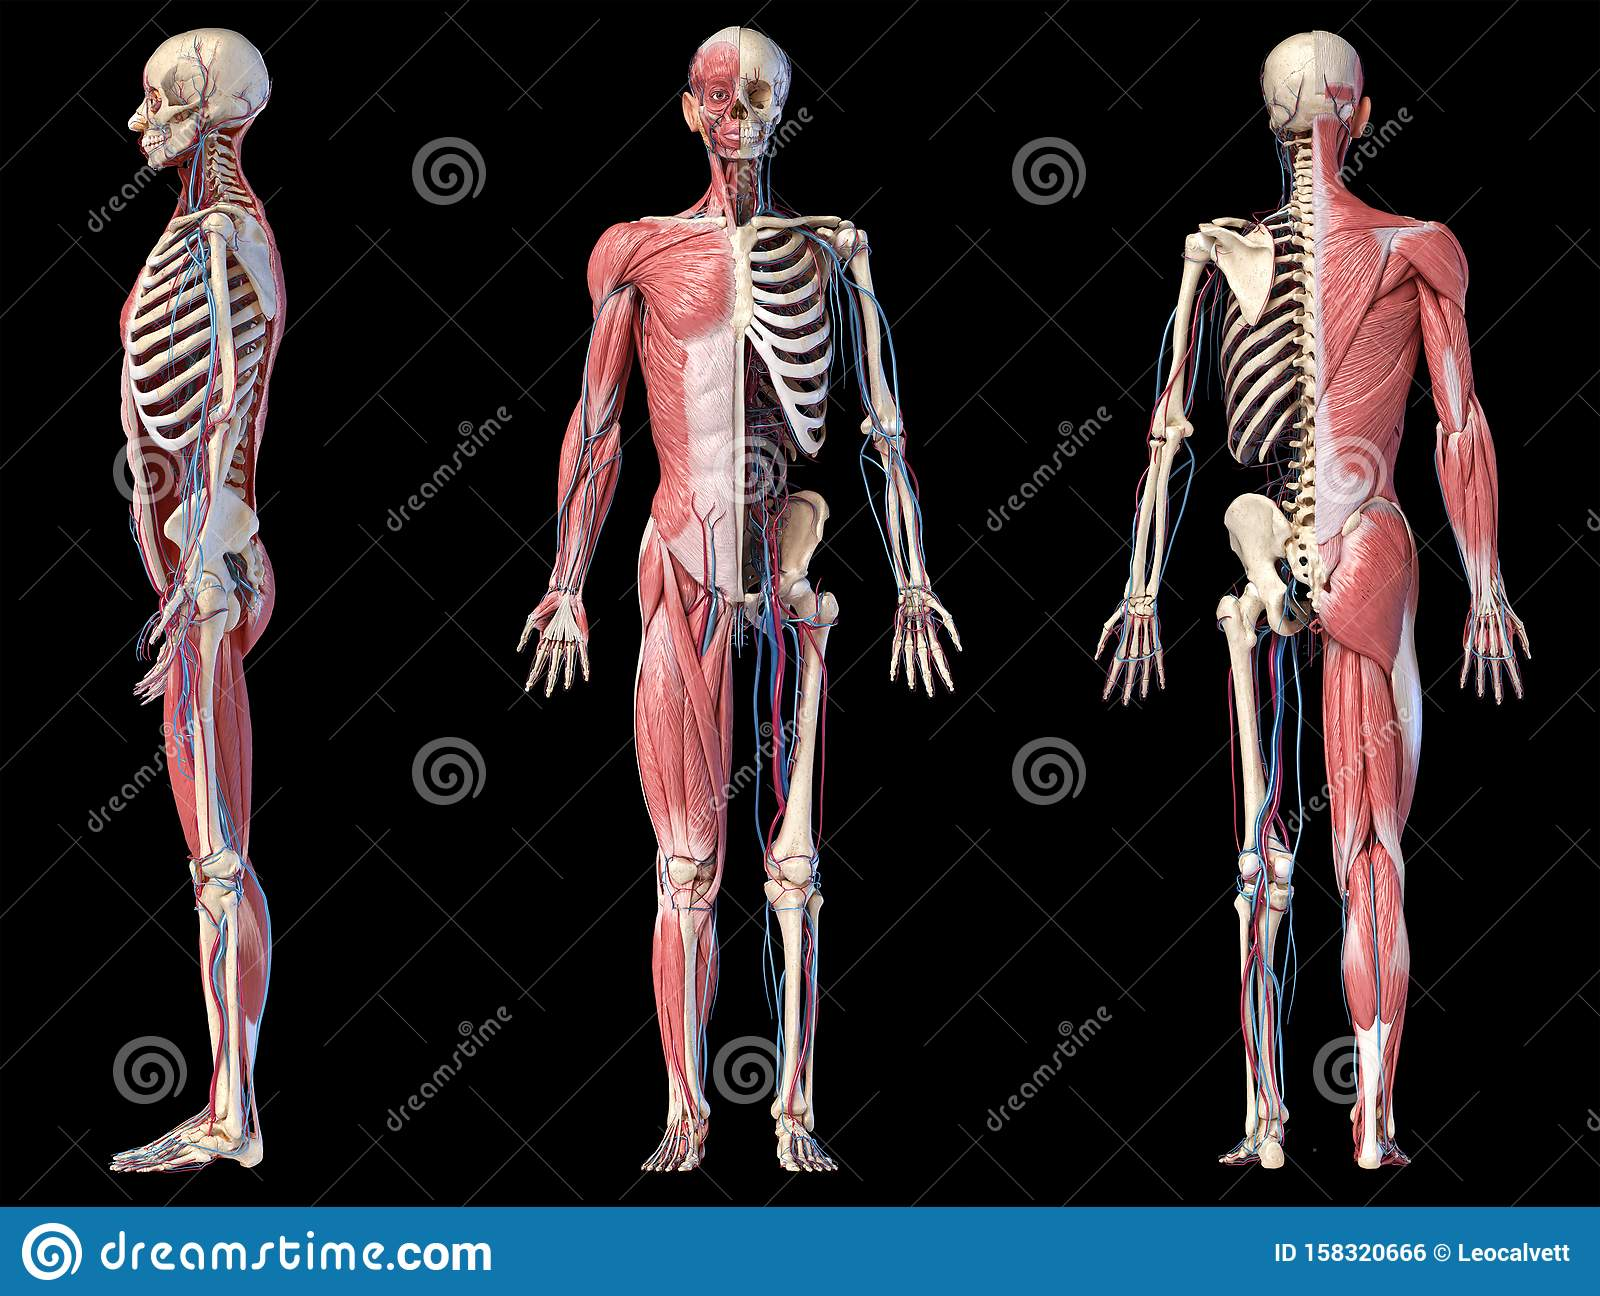 3d Illustration Of Human Full Body Skeleton With Muscles